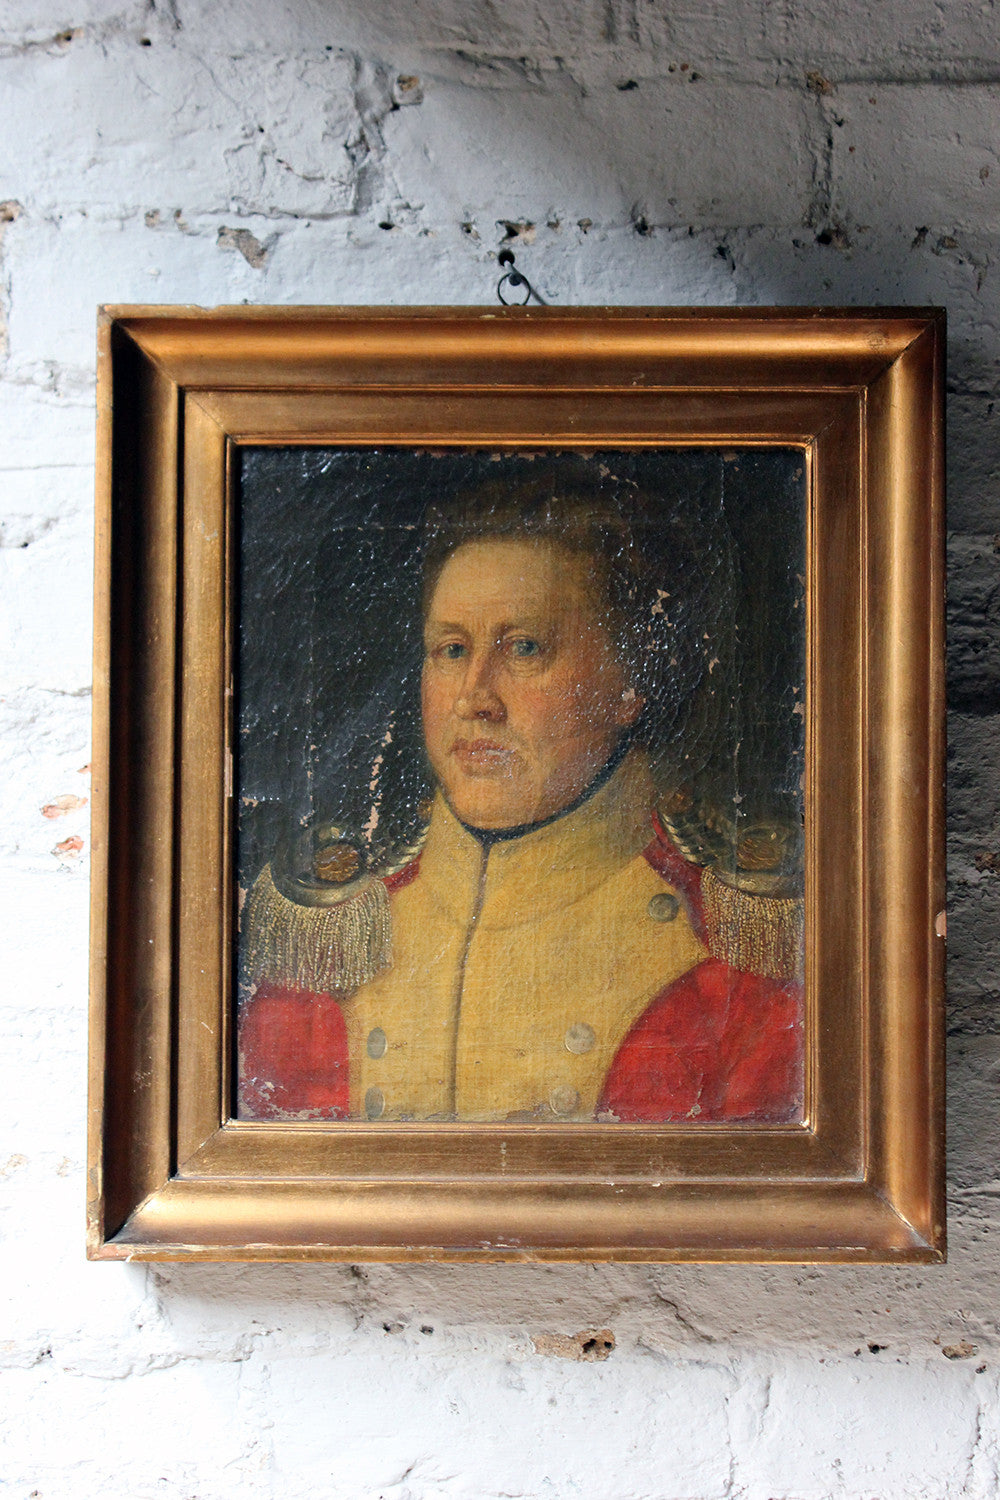 A Good Continental Provincial School Oil on Canvas Portrait of an Military Officer c.1800-1810